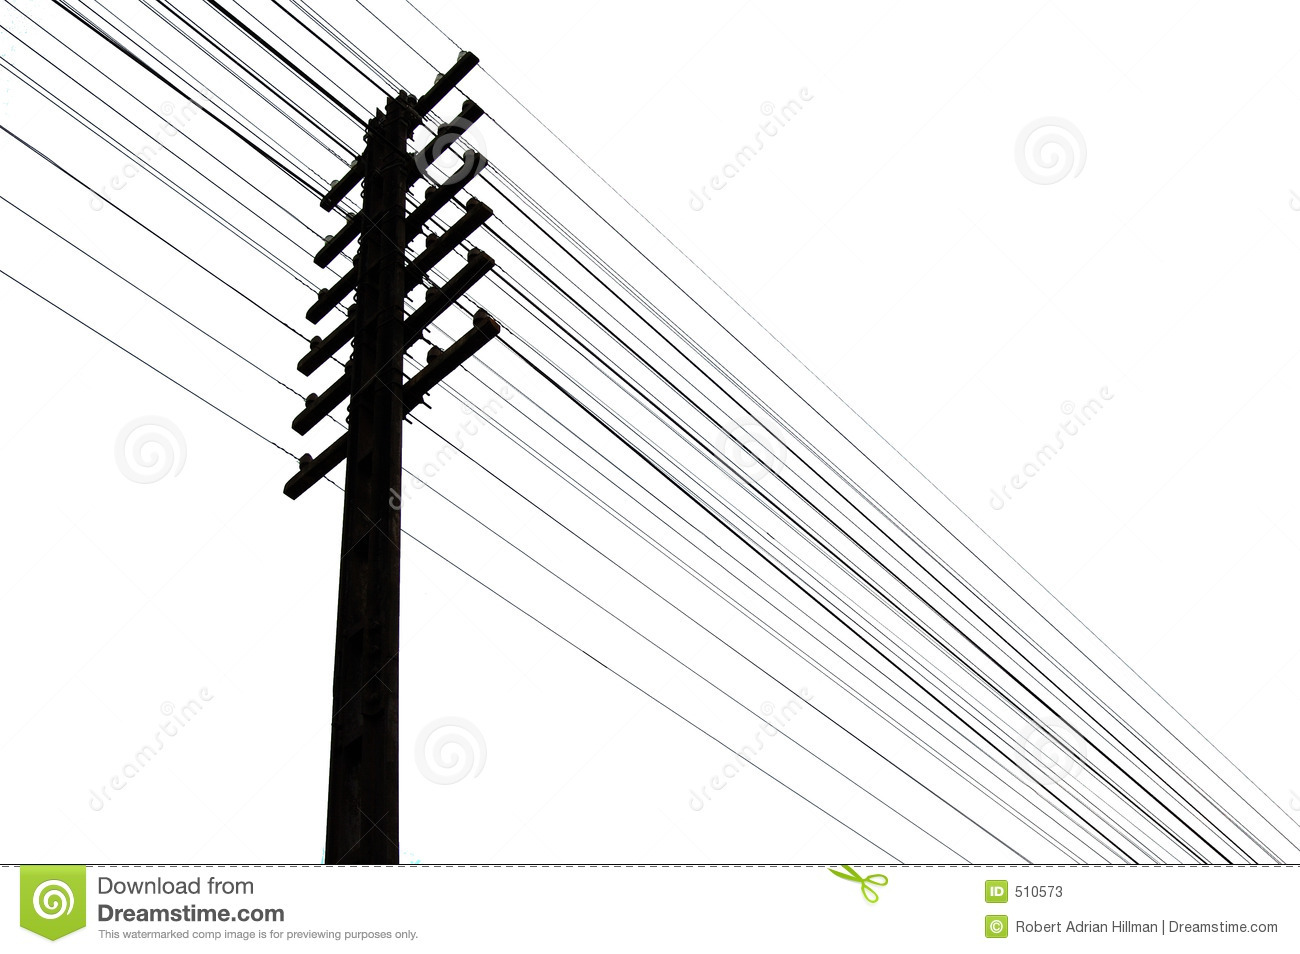 Telegraph wires stock illustration. Image of call, energy